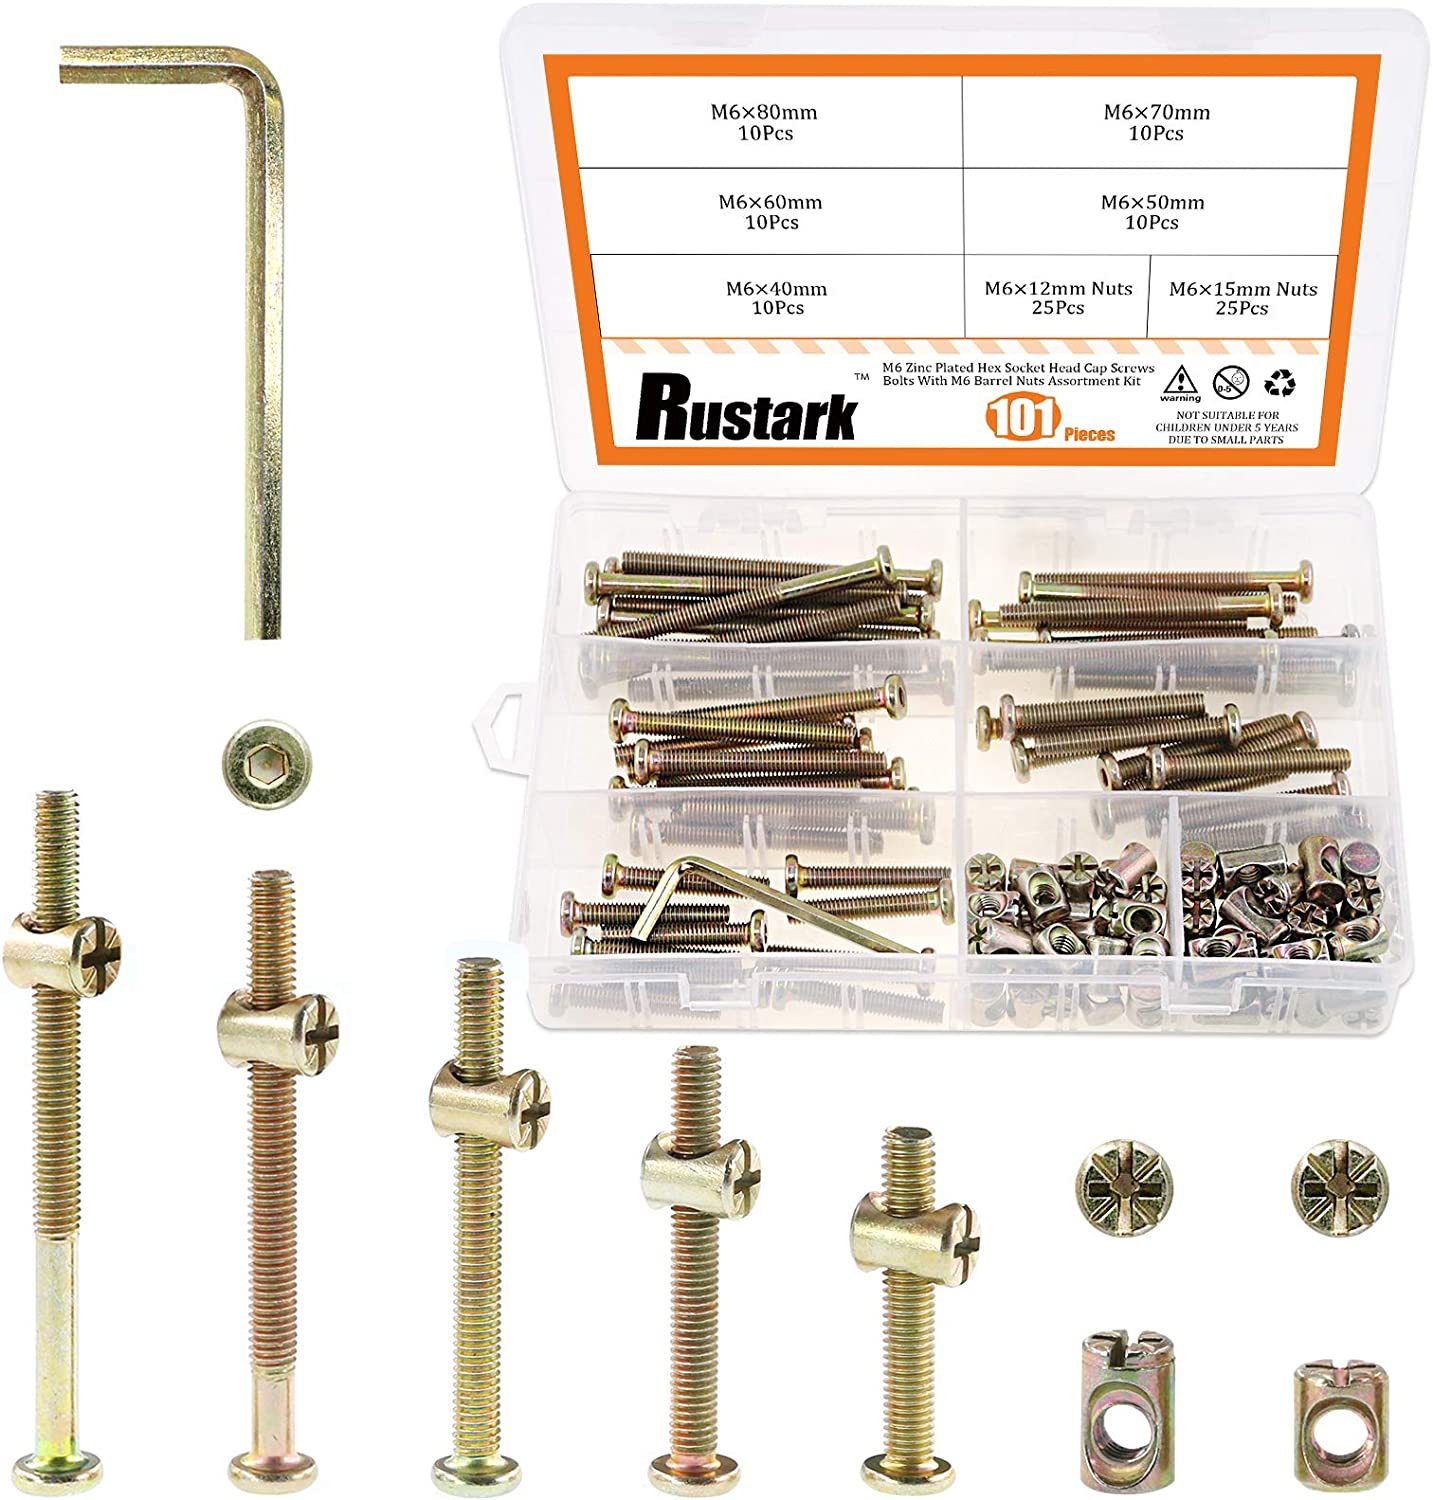 Rustark 100Pcs M6x40/50/60/70/80mm Zinc Plated Hex Drive Socket Head Cap Screws Nuts Furniture Bolts with Barrel Nuts Assortment Kit for Furniture Cots Beds Crib and Chairs